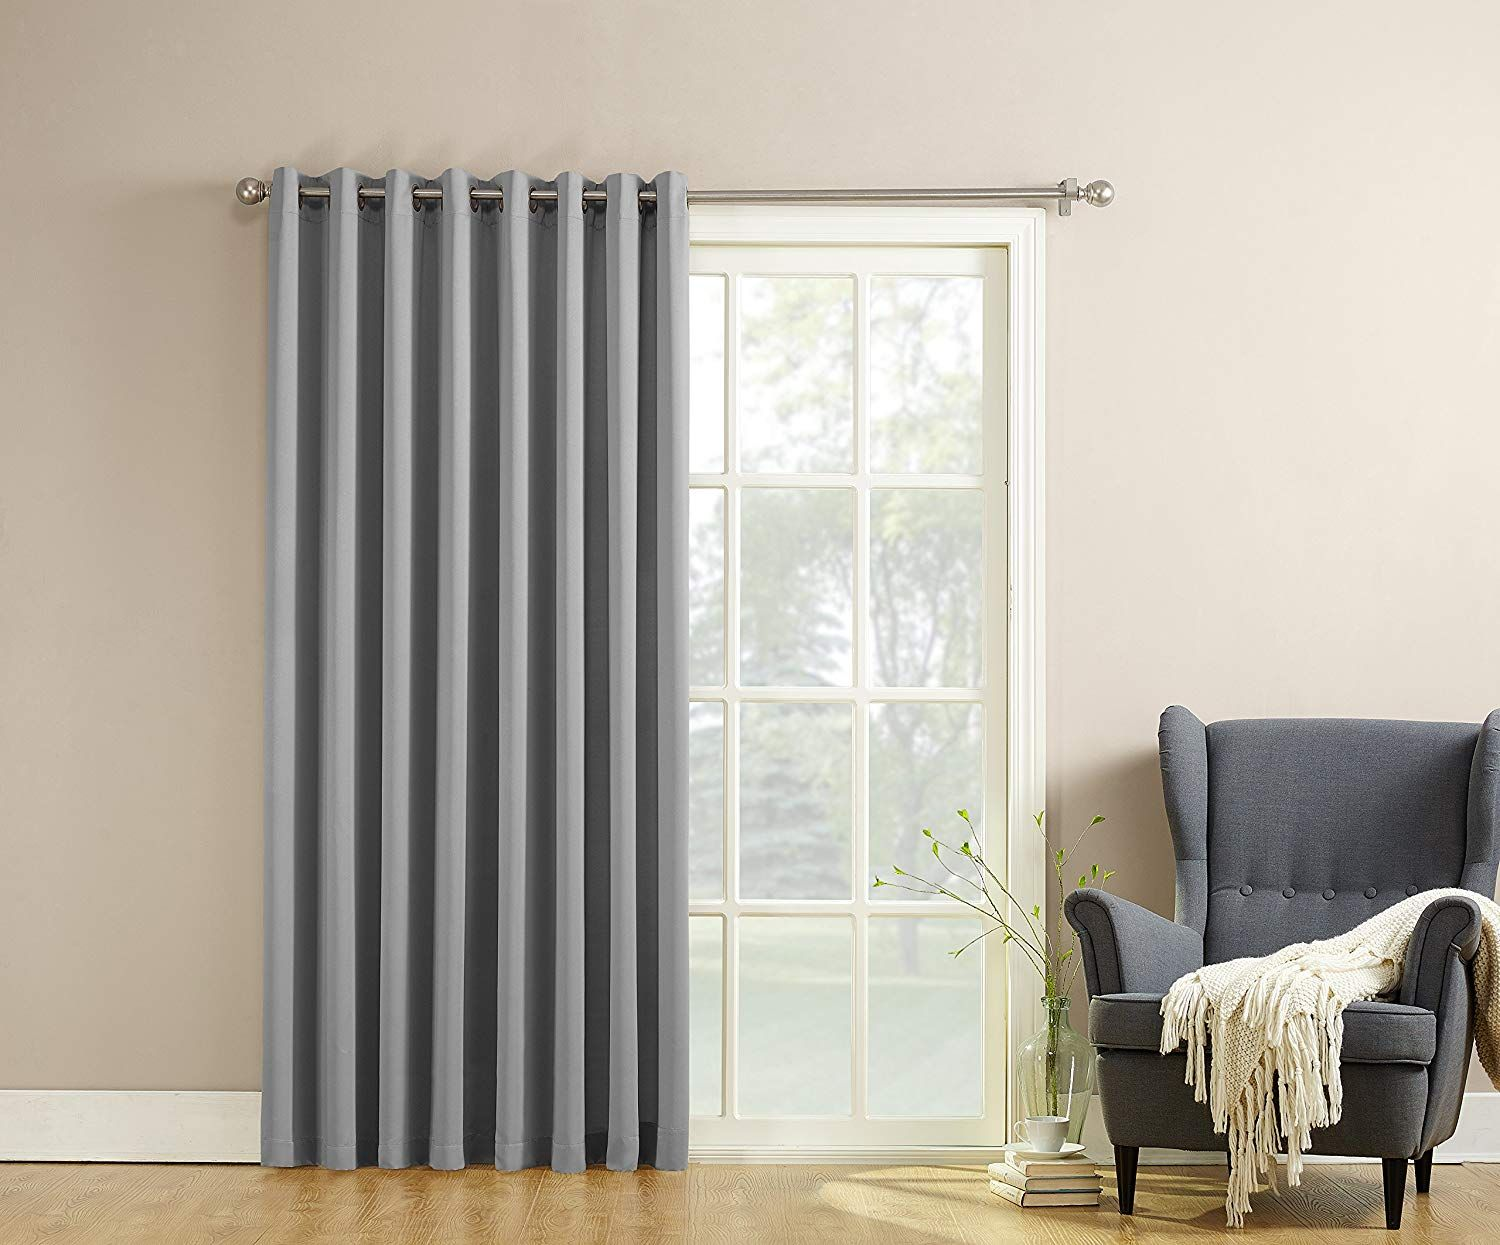 Best 92 Reference Of Patio Door Curtain Panel 100 X 84 In 2020 Patio Door Curtains Patio Panel Panel Curtains